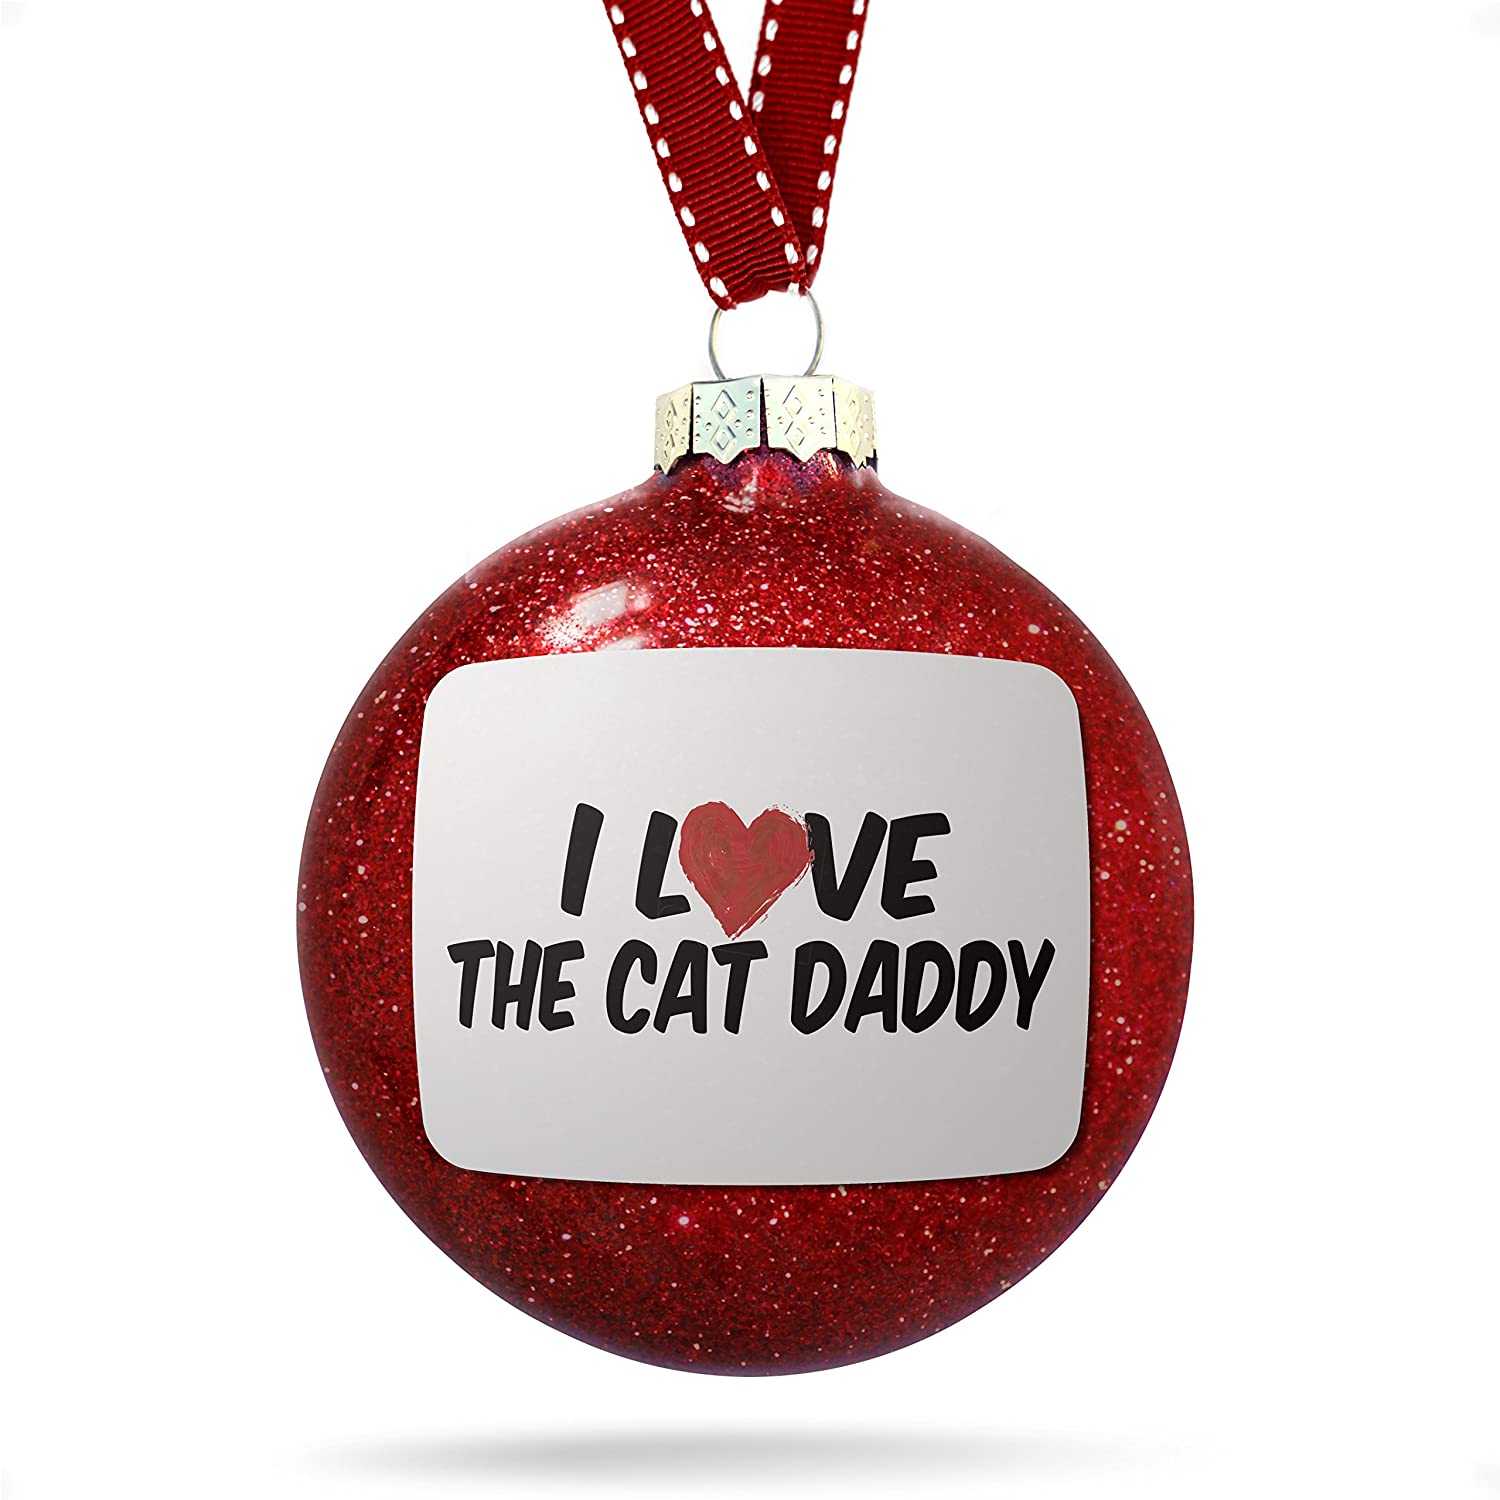 Amazon.com: Christmas Decoration I Love the Cat Daddy Ornament: Home ...